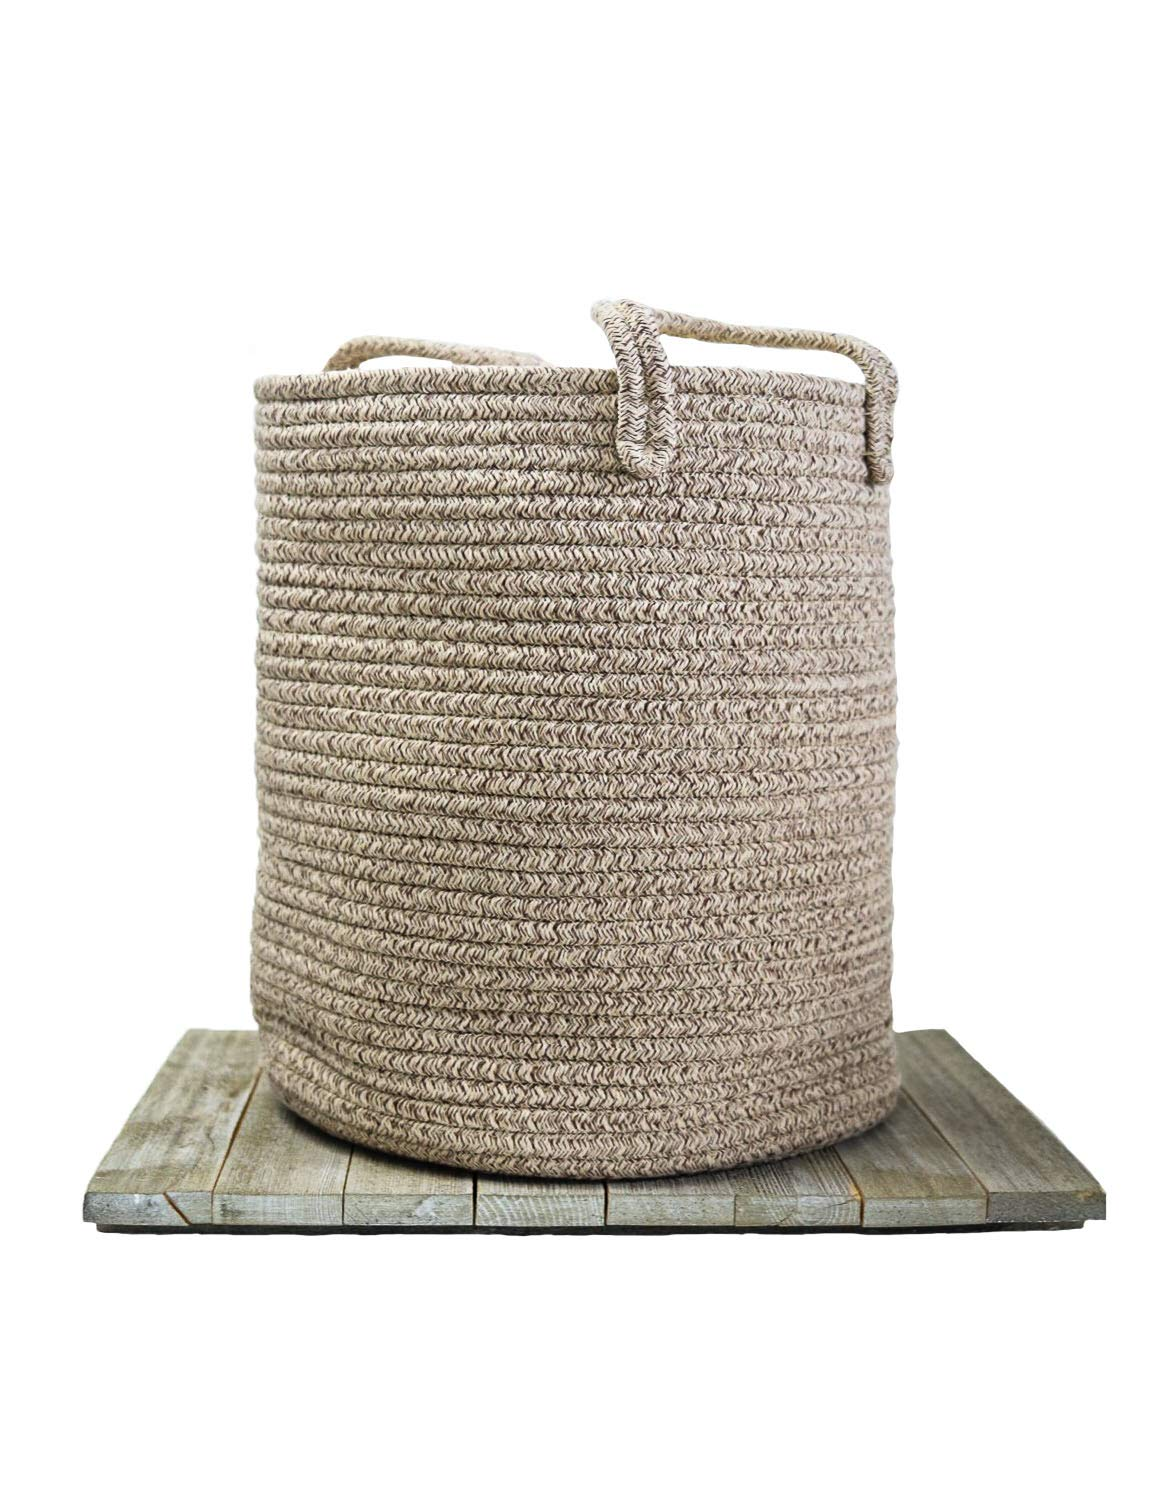 Cotton Rope Baby Basket - Decorative Woodland Nursery Organizer/Woven Baby Basket for Toys, Baby Essentials, Blankets - Boho Nursery Decor Piece - Baby Furniture - Baby Registry